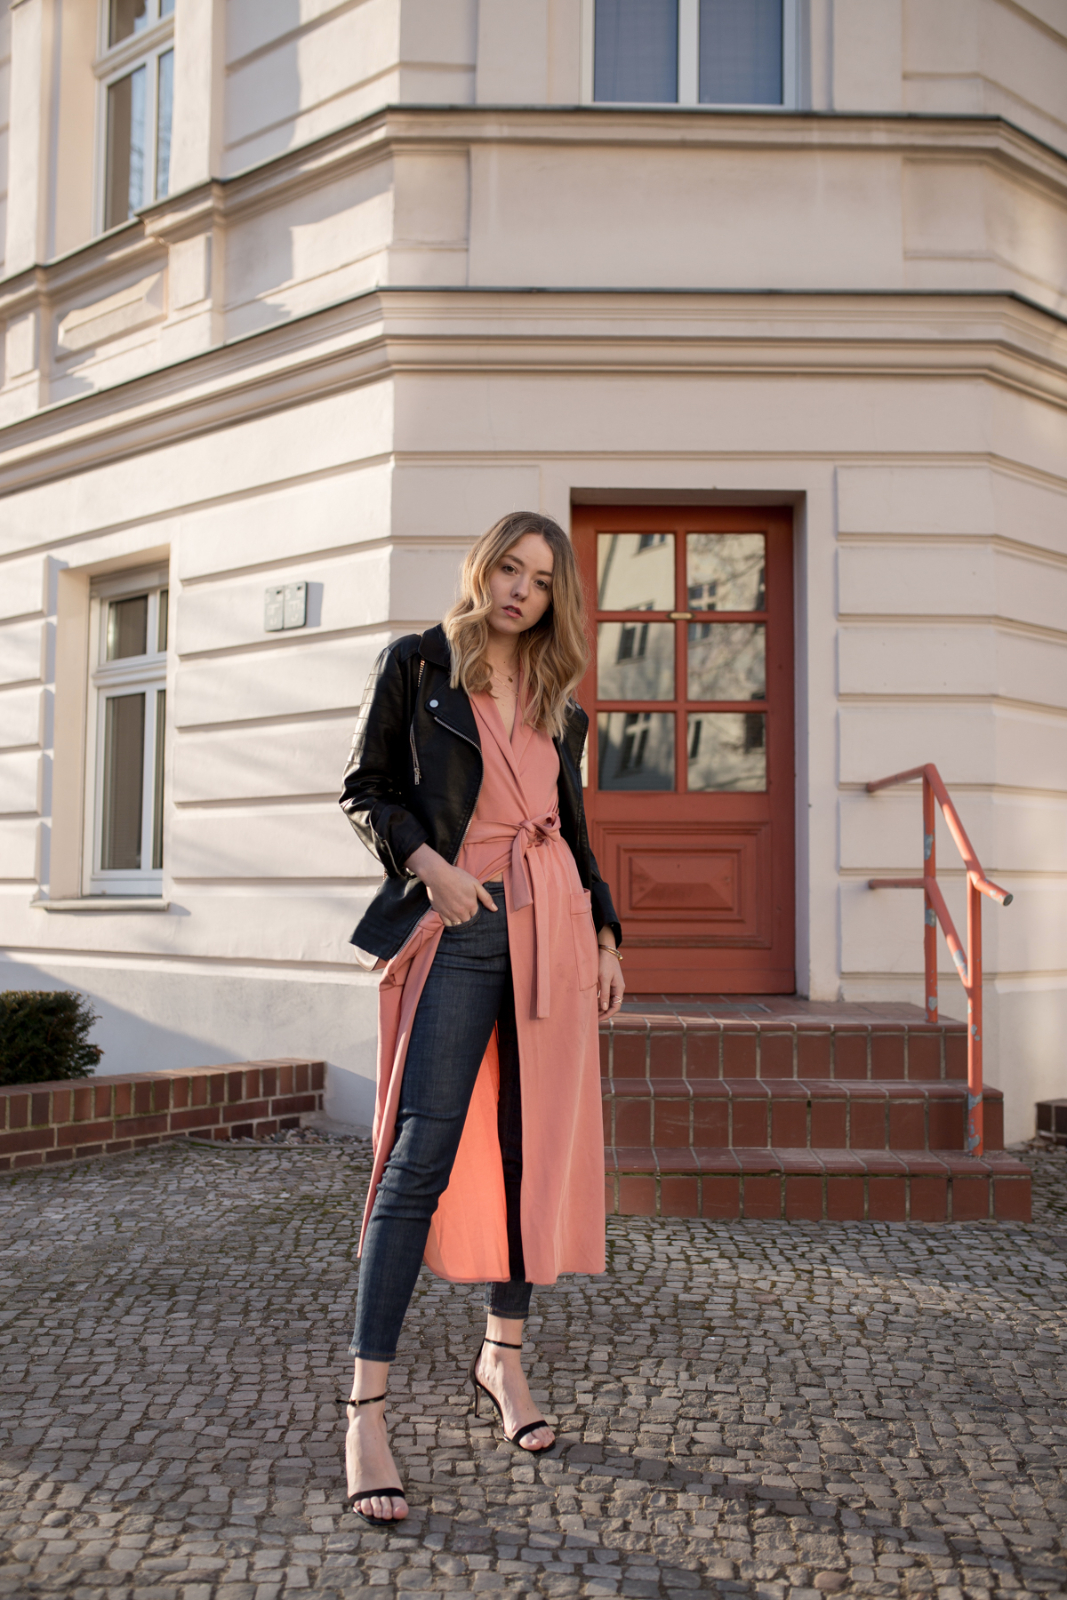 Denim_Pink_The-Limits-of-Control-Fashion-Fashionblogger-Blogger-Berlin-Deutschland-Modeblog-Modeblogger